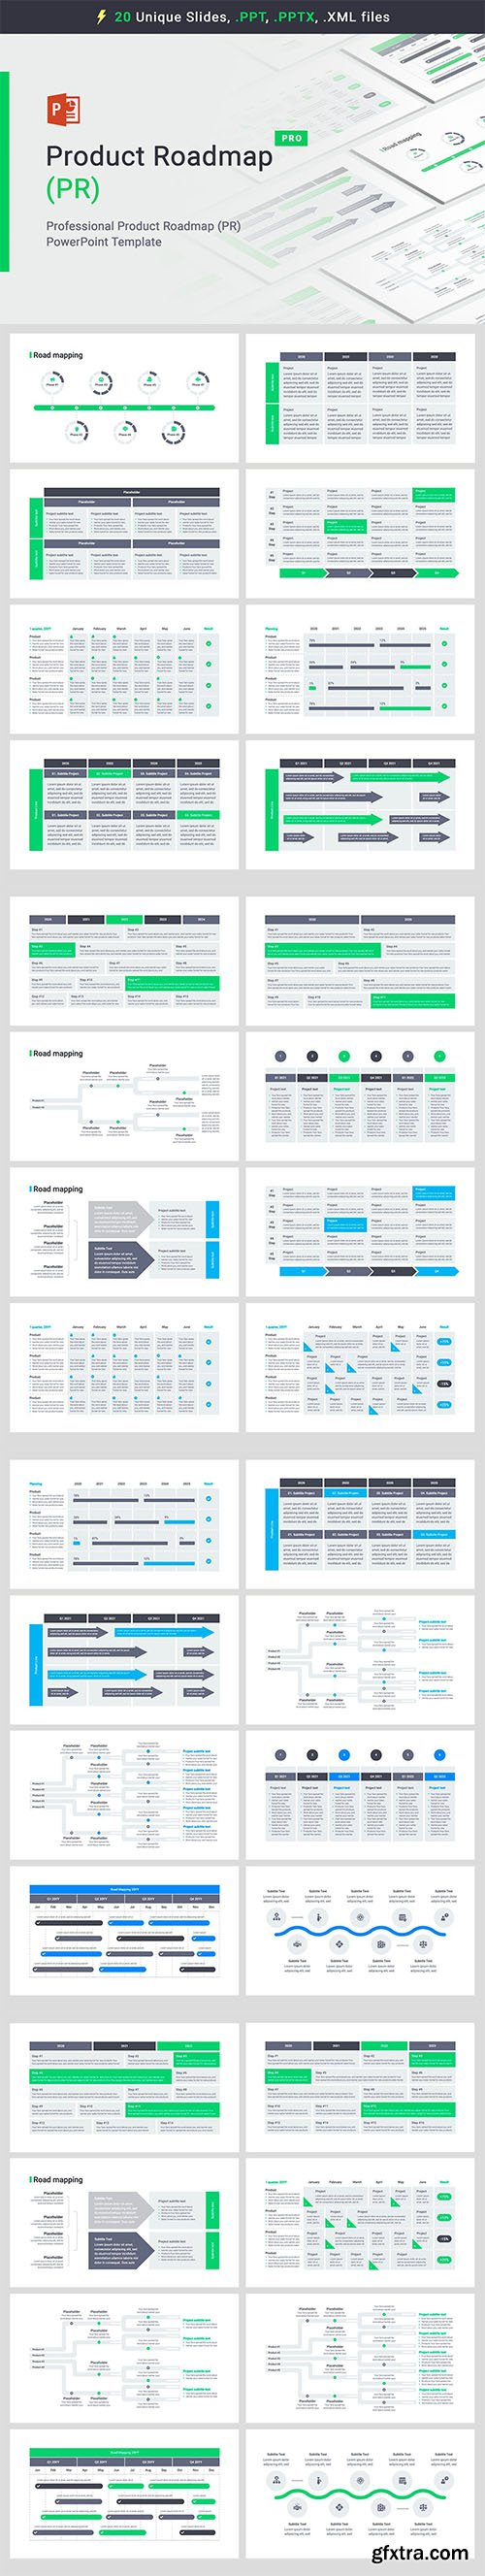 Product Roadmap Powerpoint, Keynote and Google Slides Templates